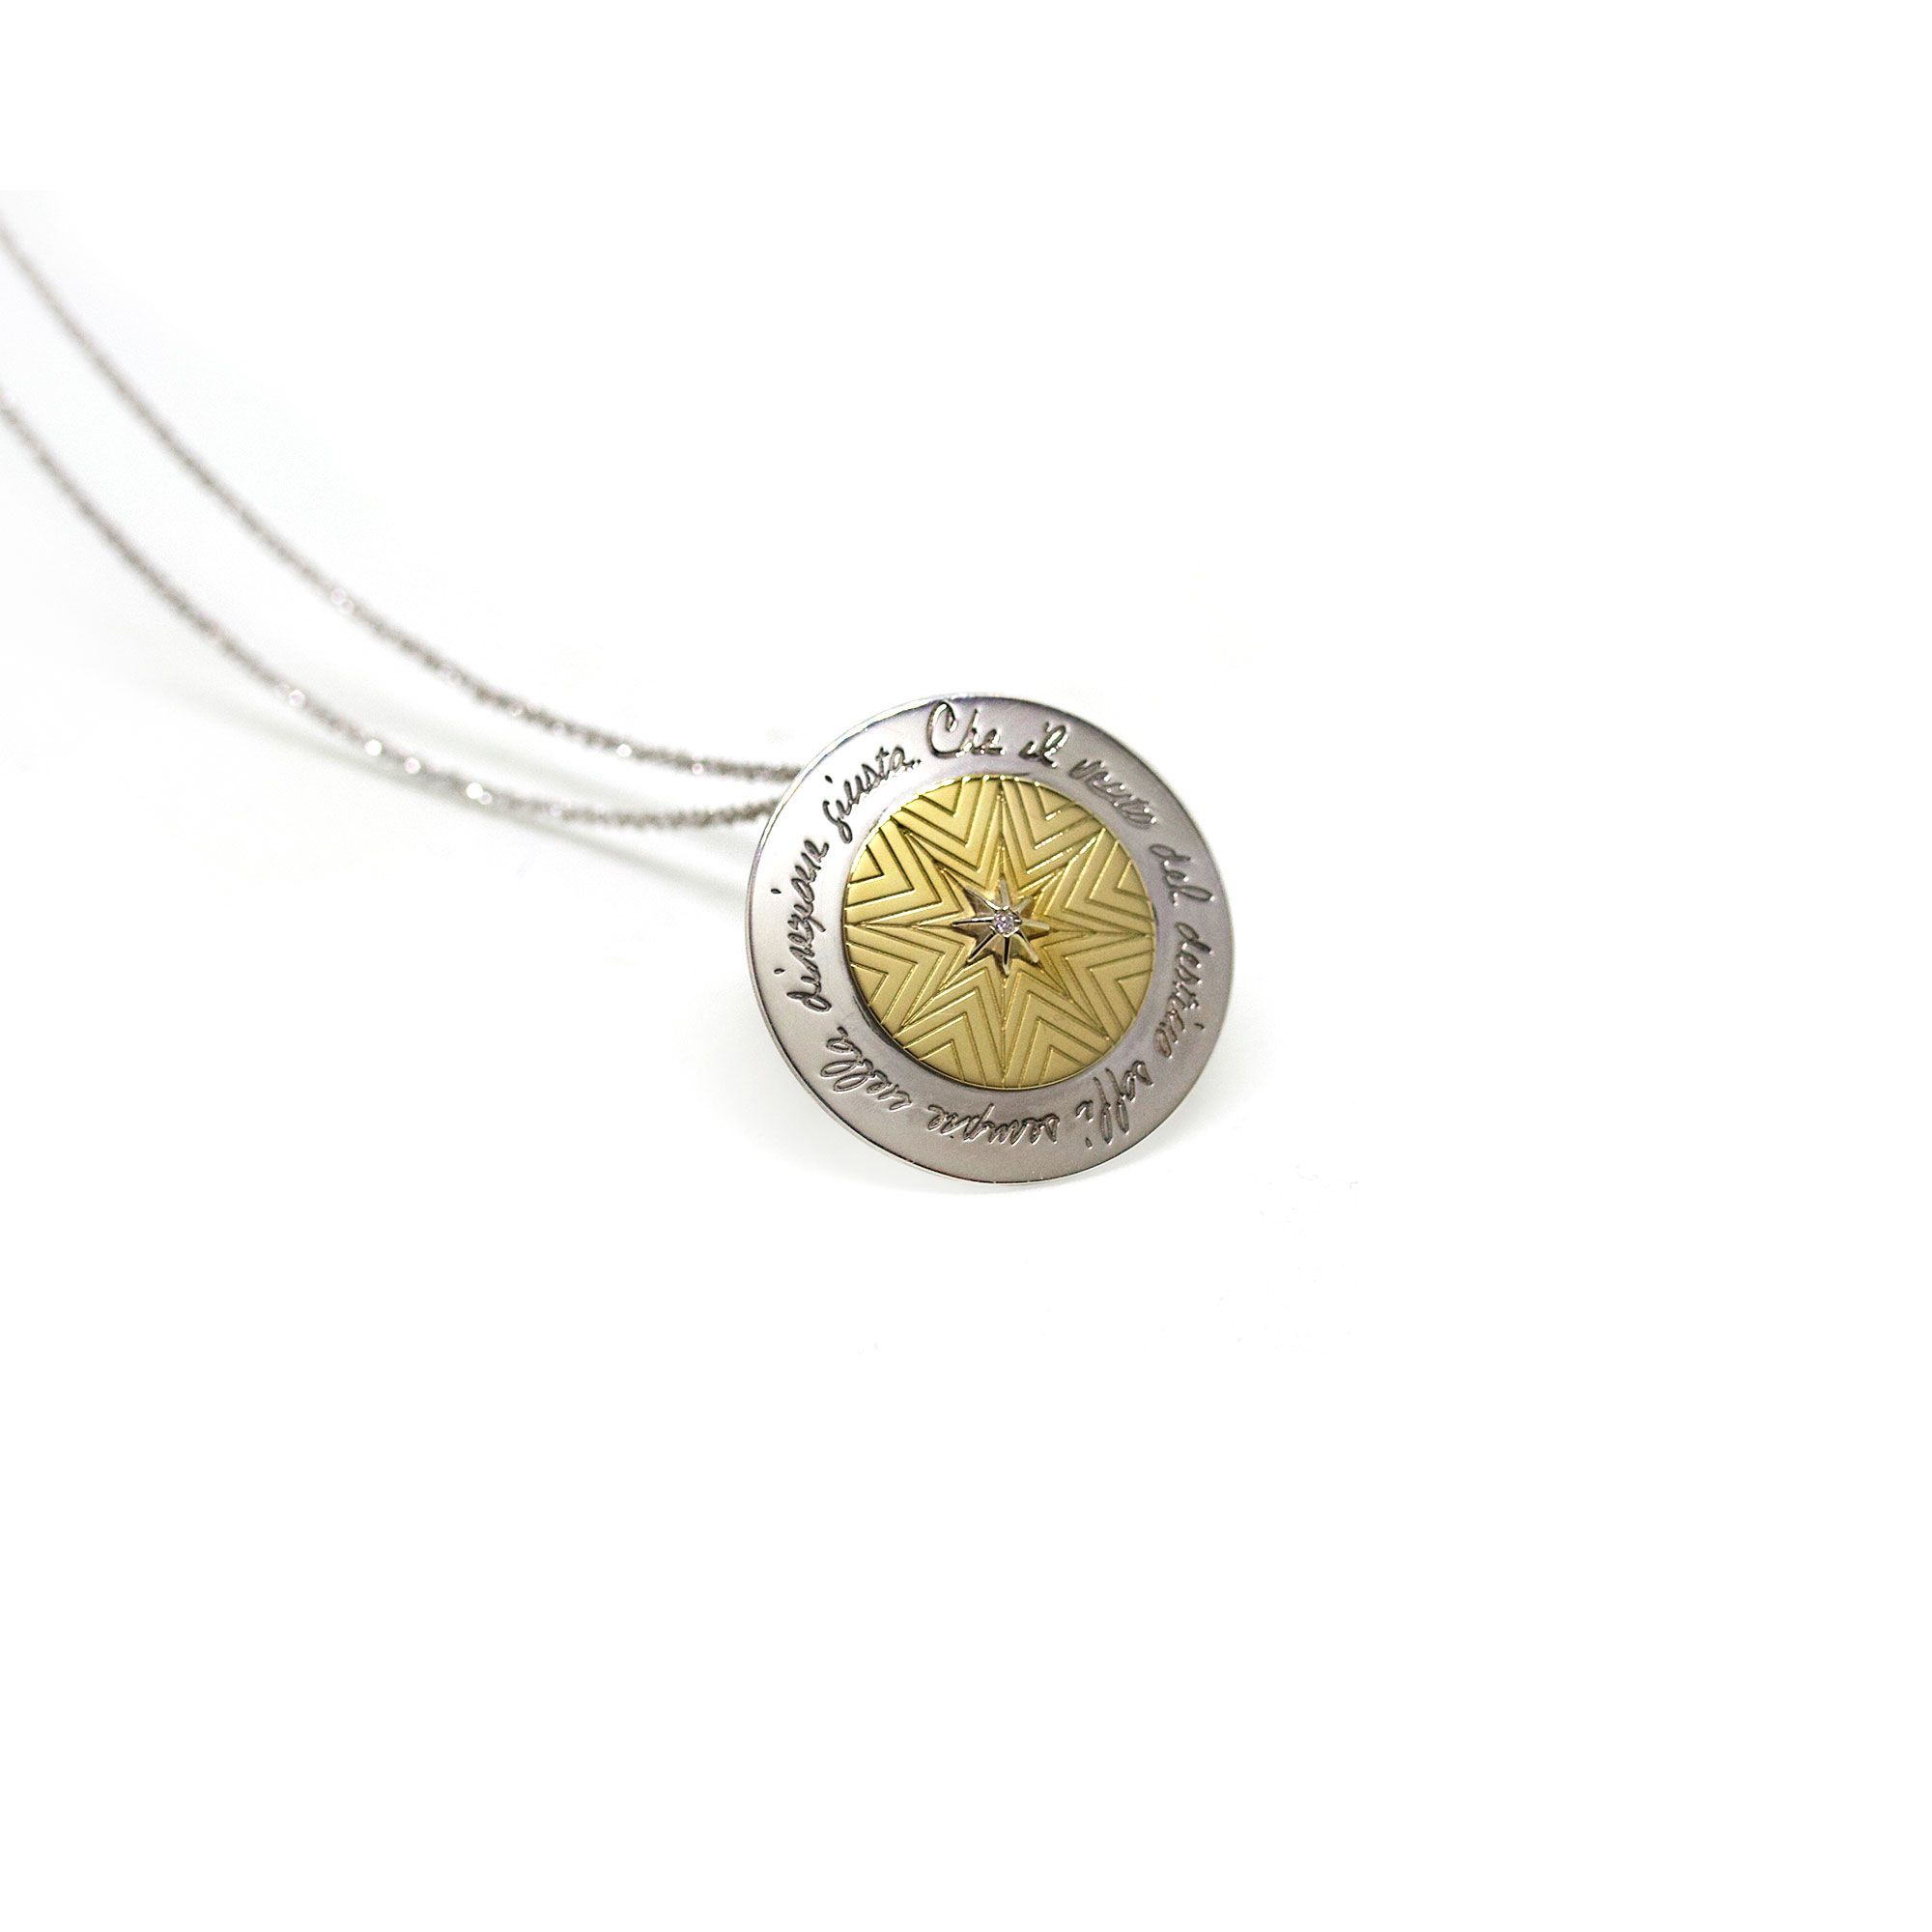 'Star of the Winds' Medal Silver and gold pendant